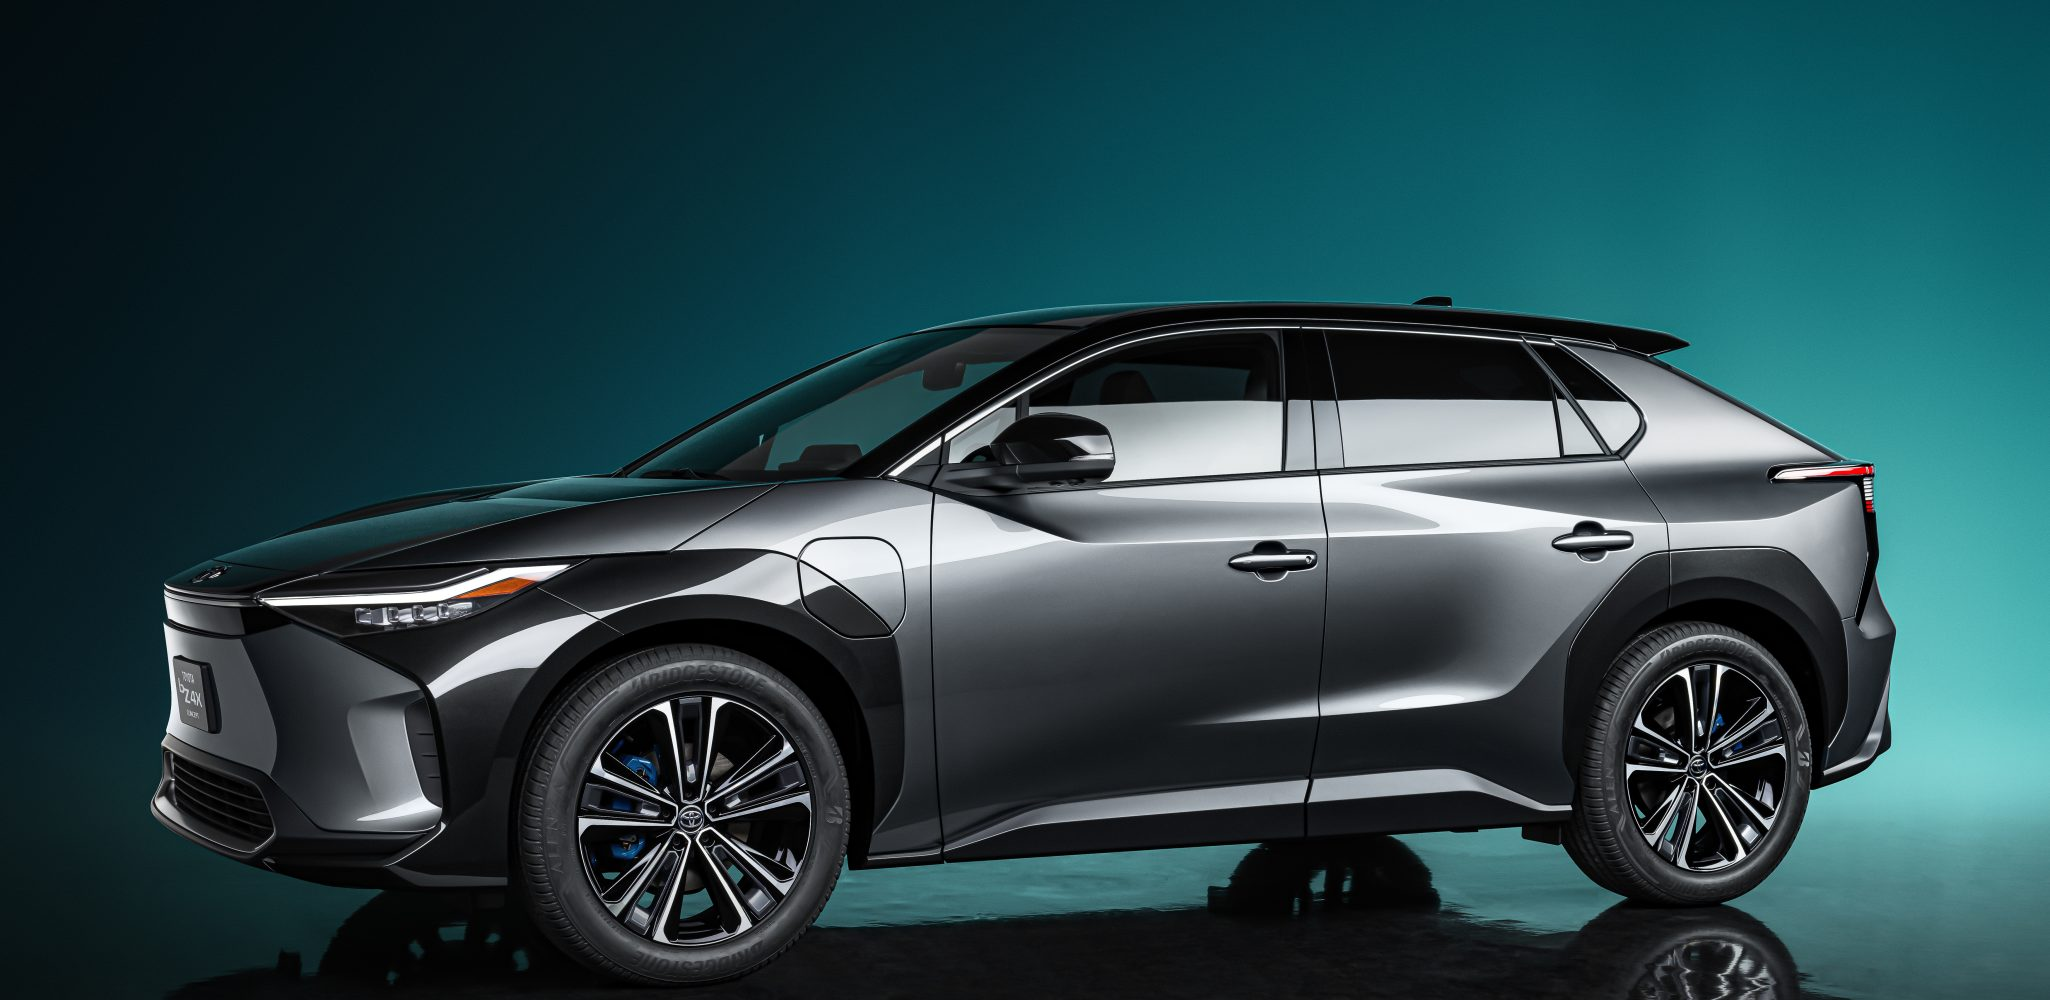 Toyota Debuts All-Electric SUV Concept